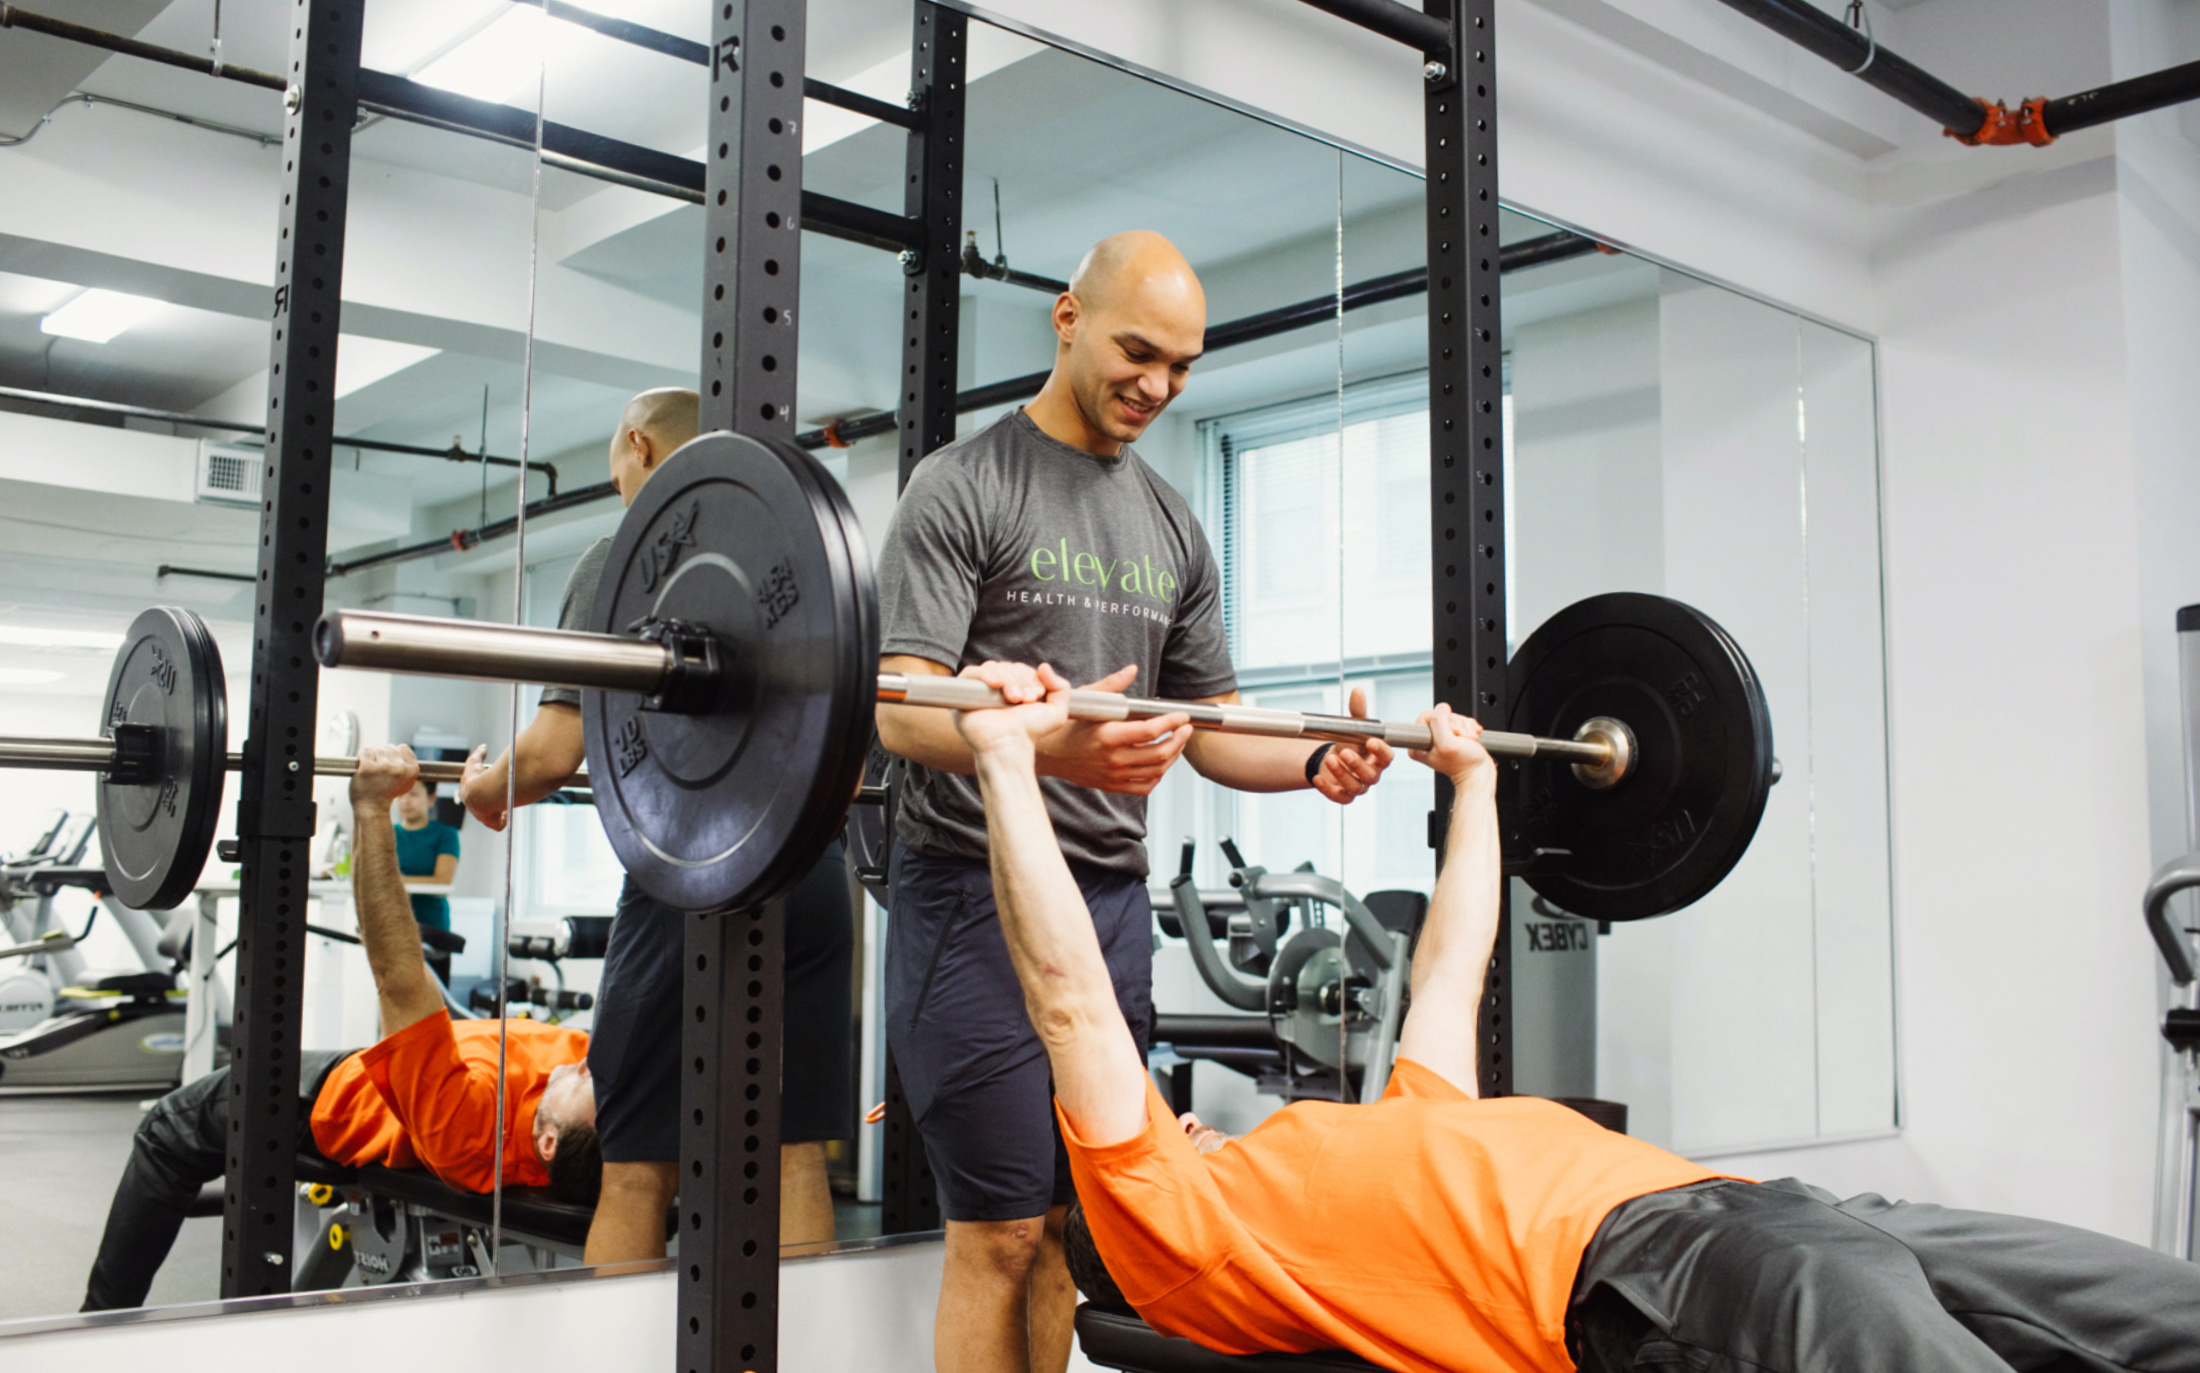 strength training helps weight loss